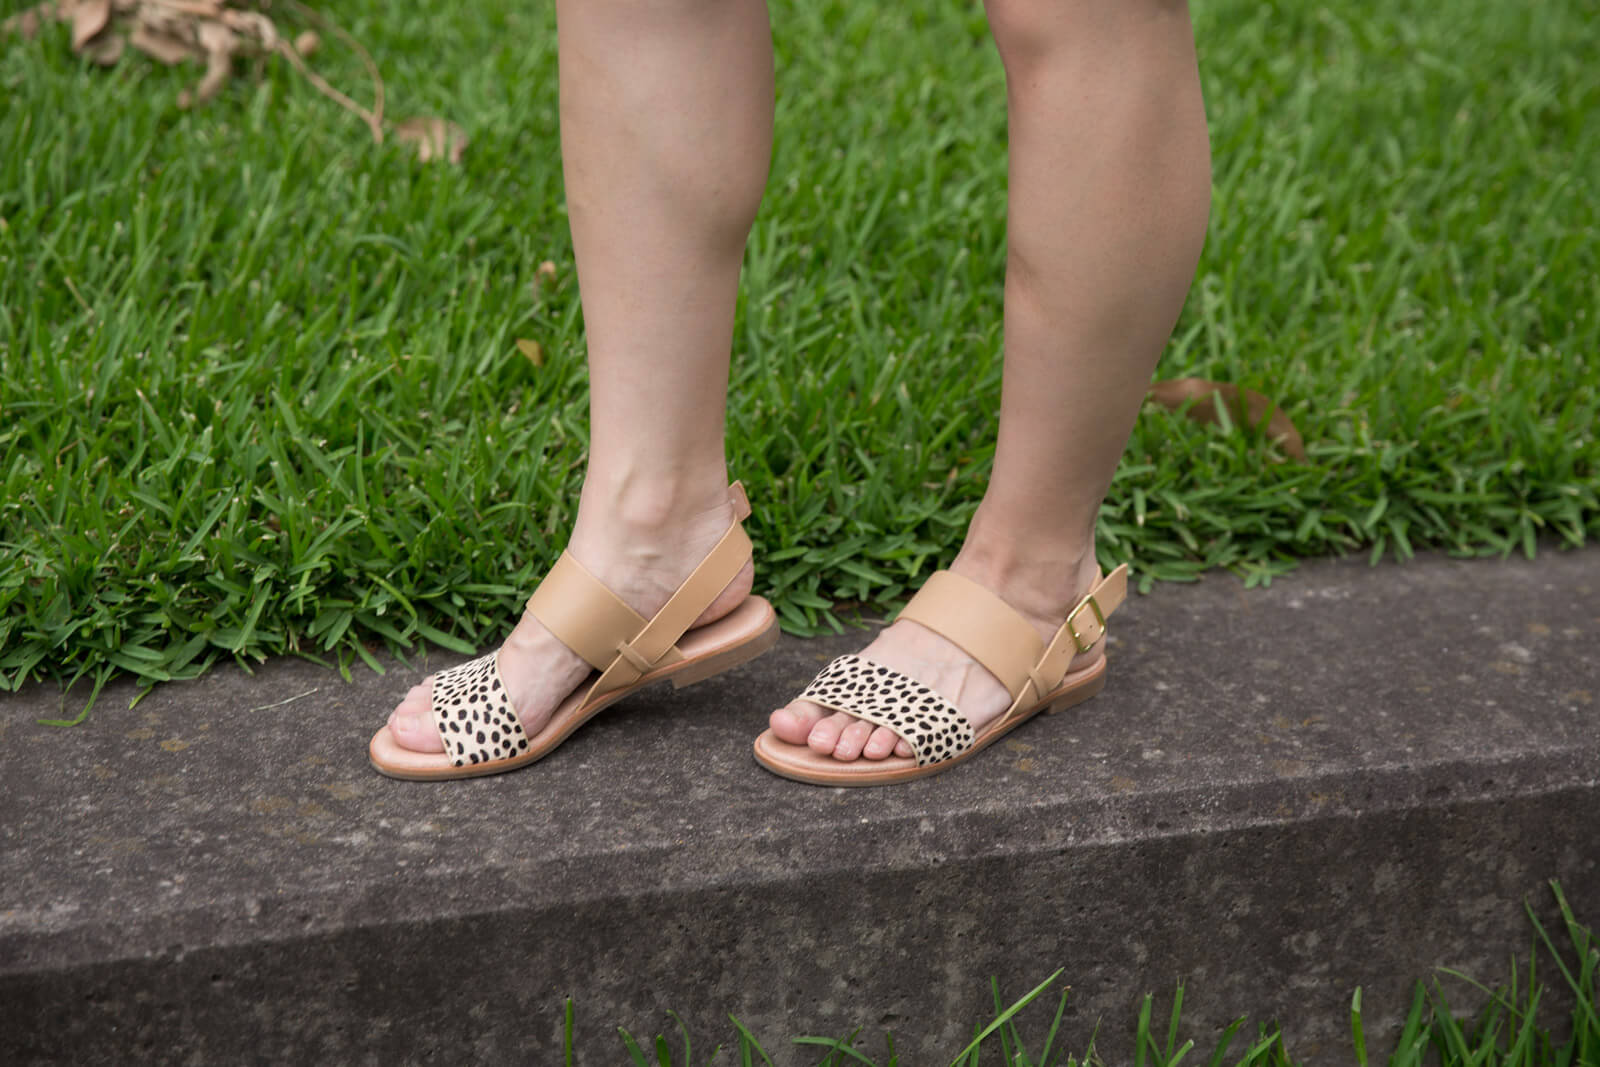 A close up of a woman wearing tan sandals with spotted animal print on the section over the toes